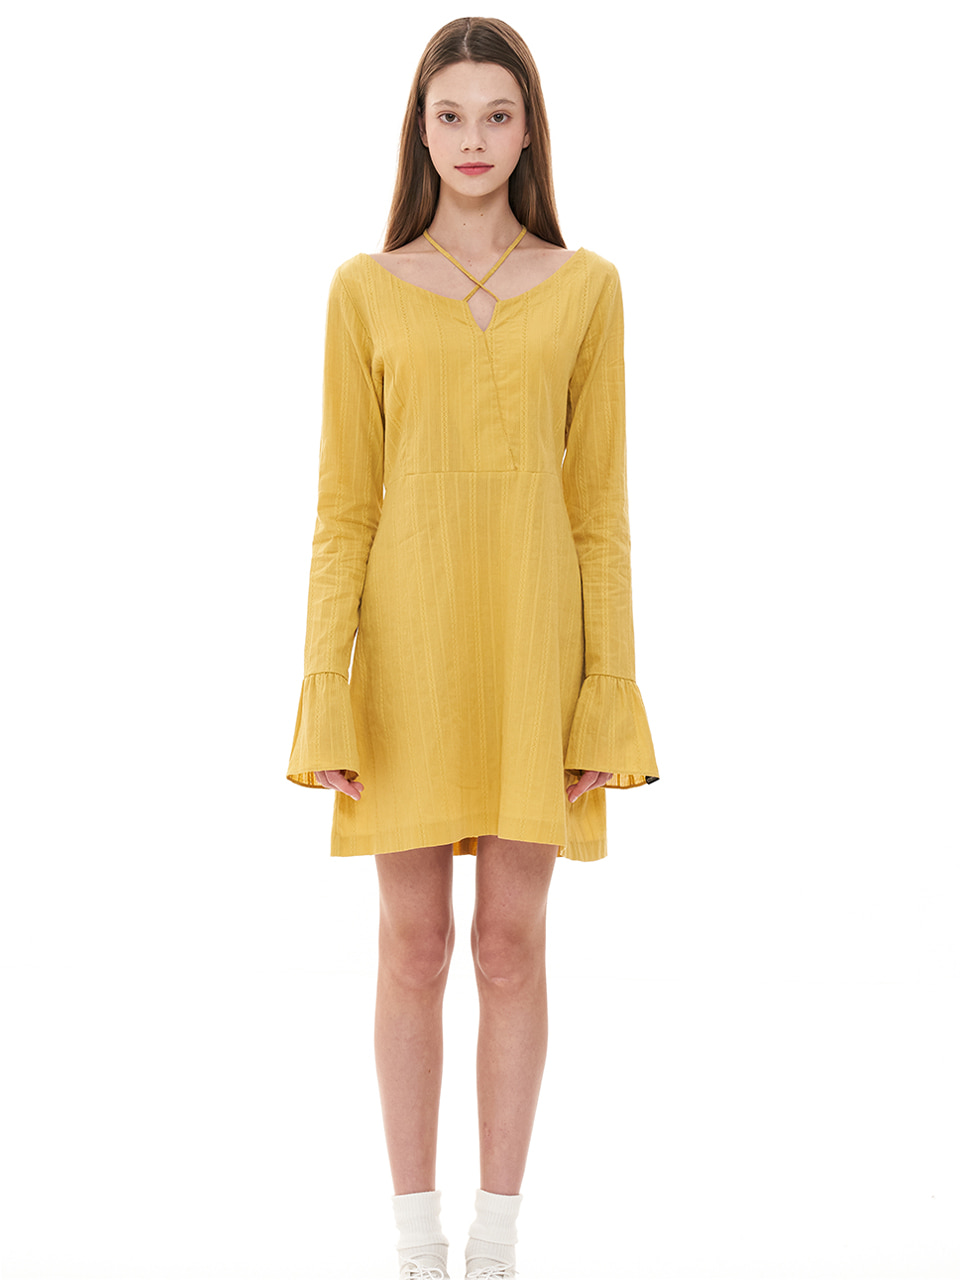 (CTC1) EMBROIDERY V-NECK DRESS YELLOW